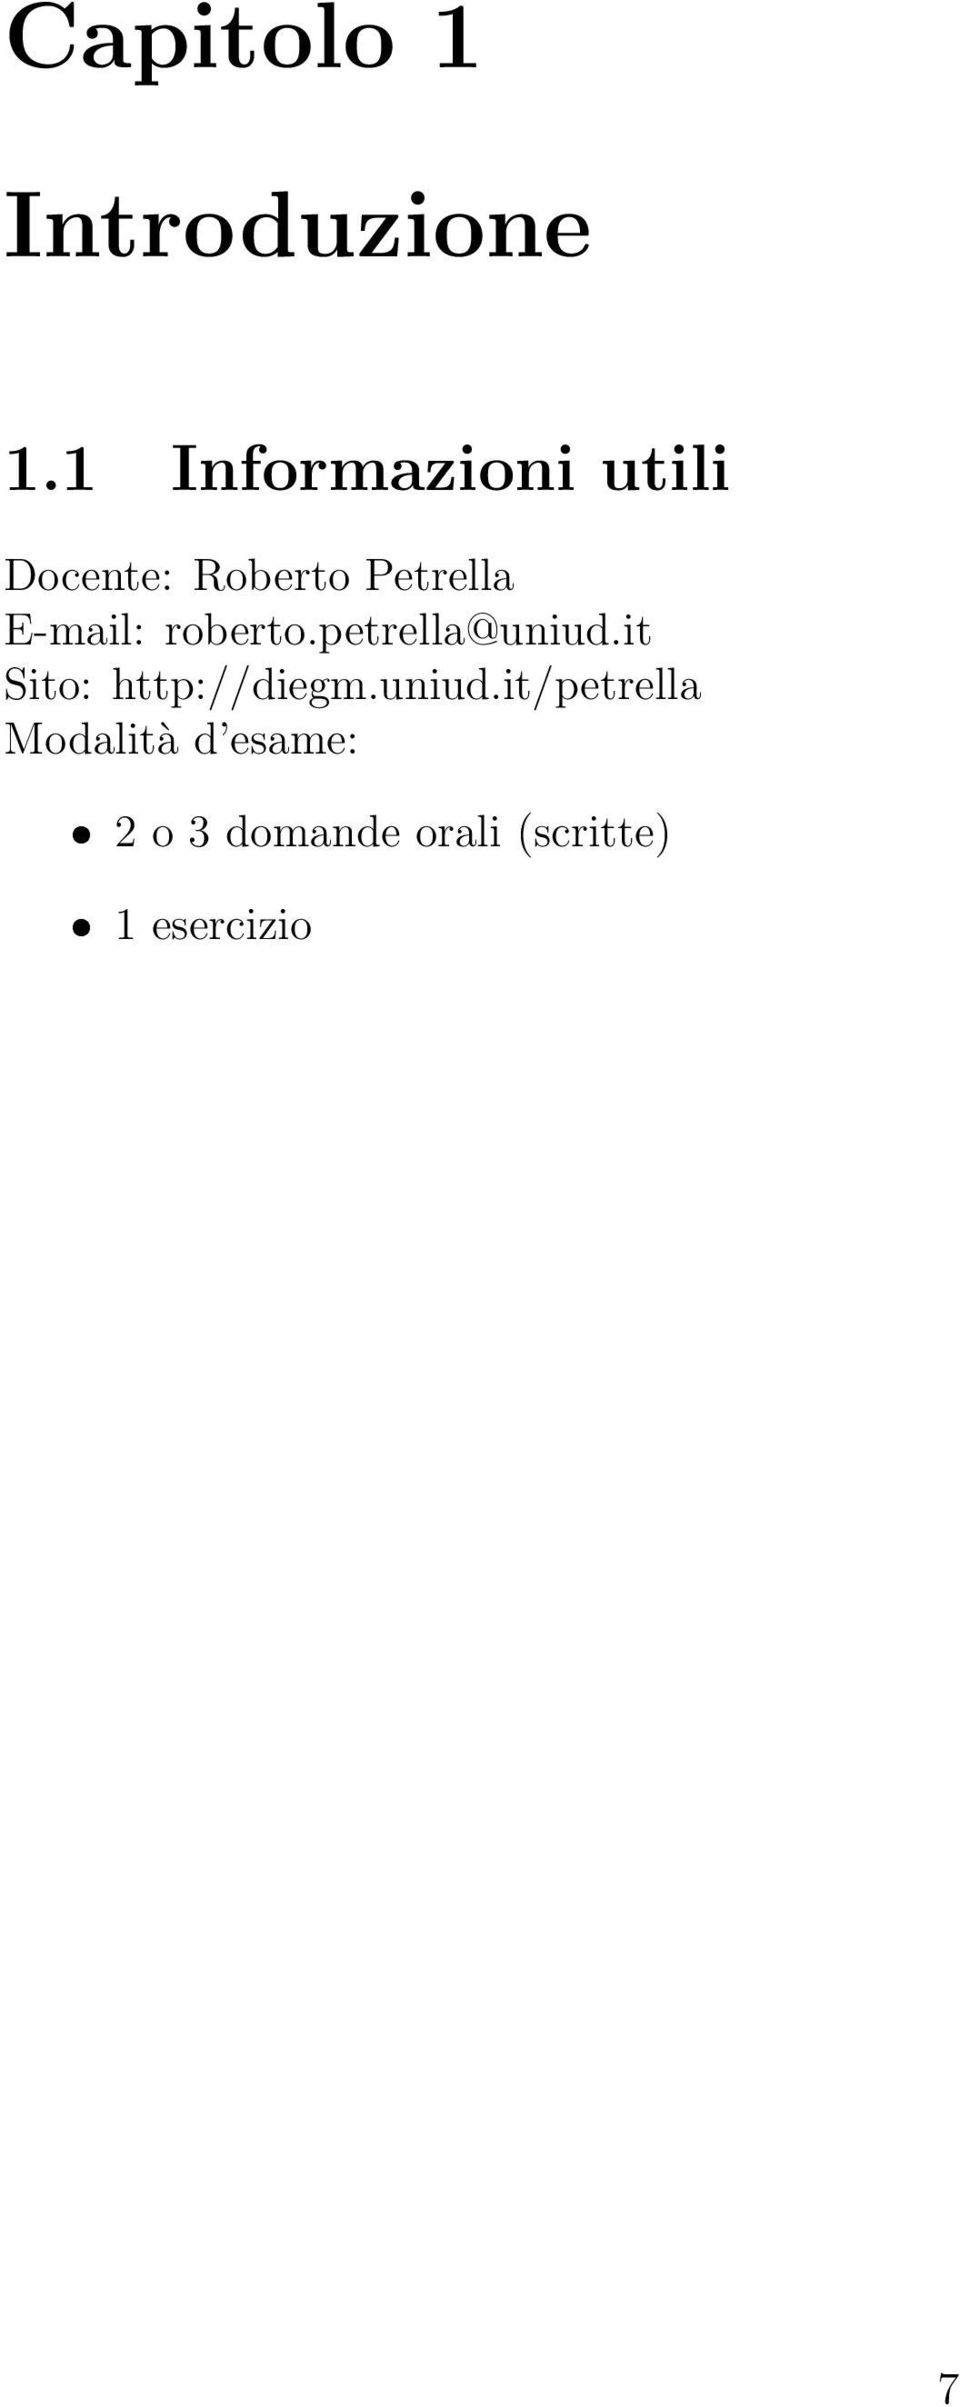 E-mail: roberto.petrella@uniud.it Sito: http://diegm.